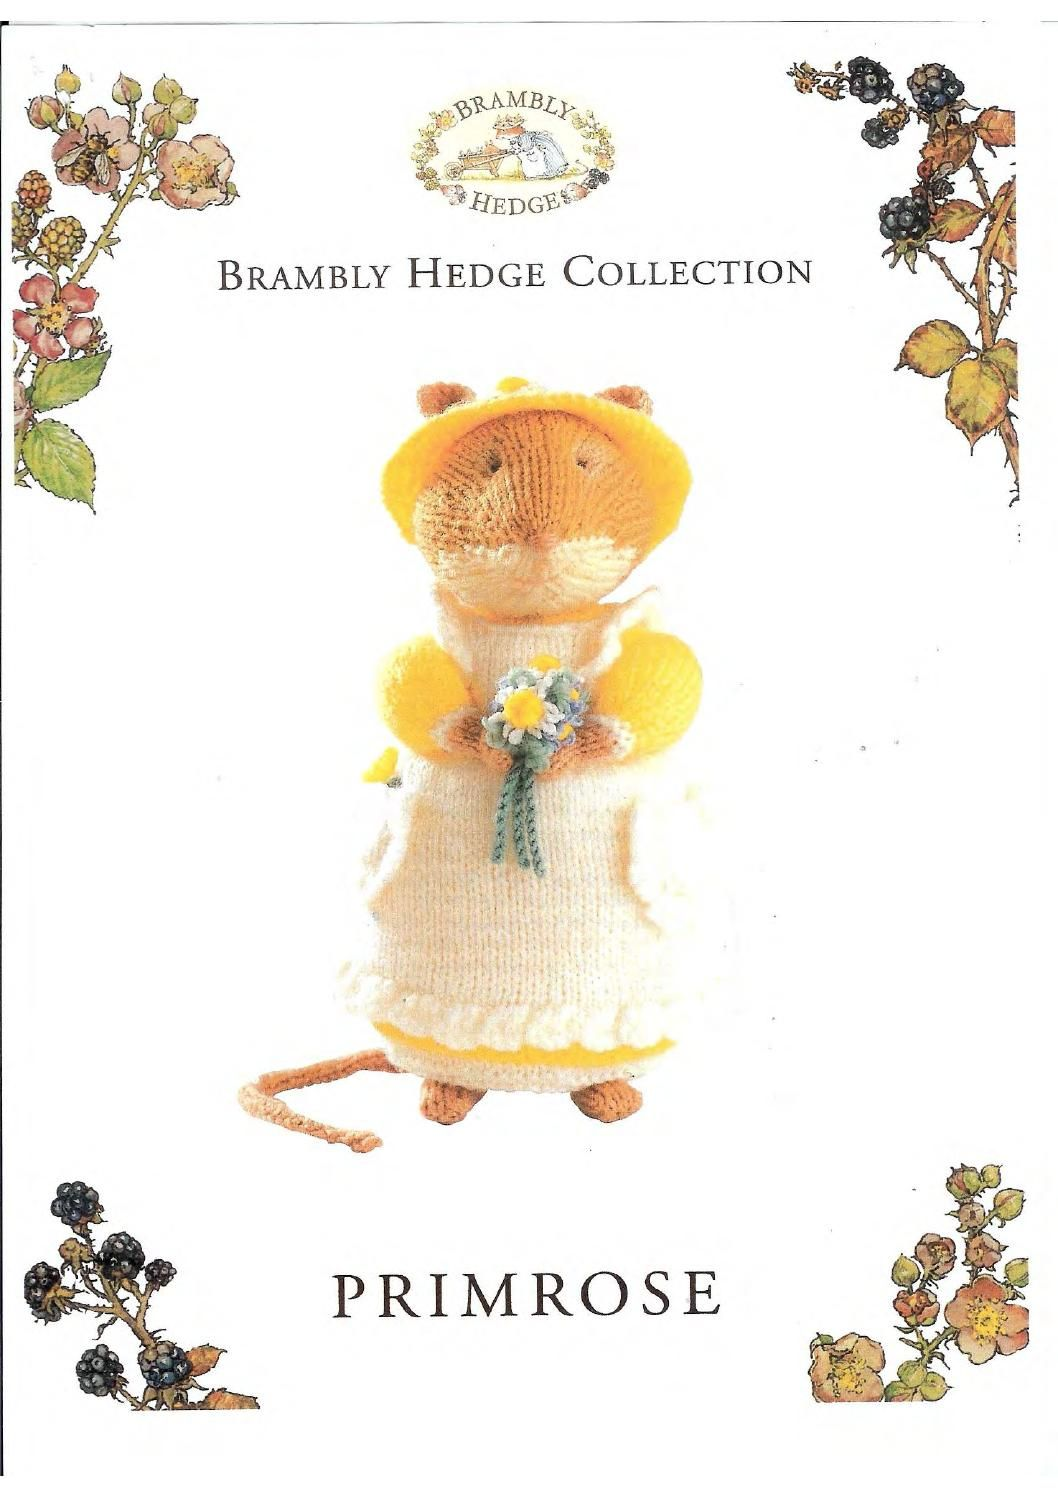 Knit brambly hedge collection primrose by FREE Magazine Inside | Fun ...